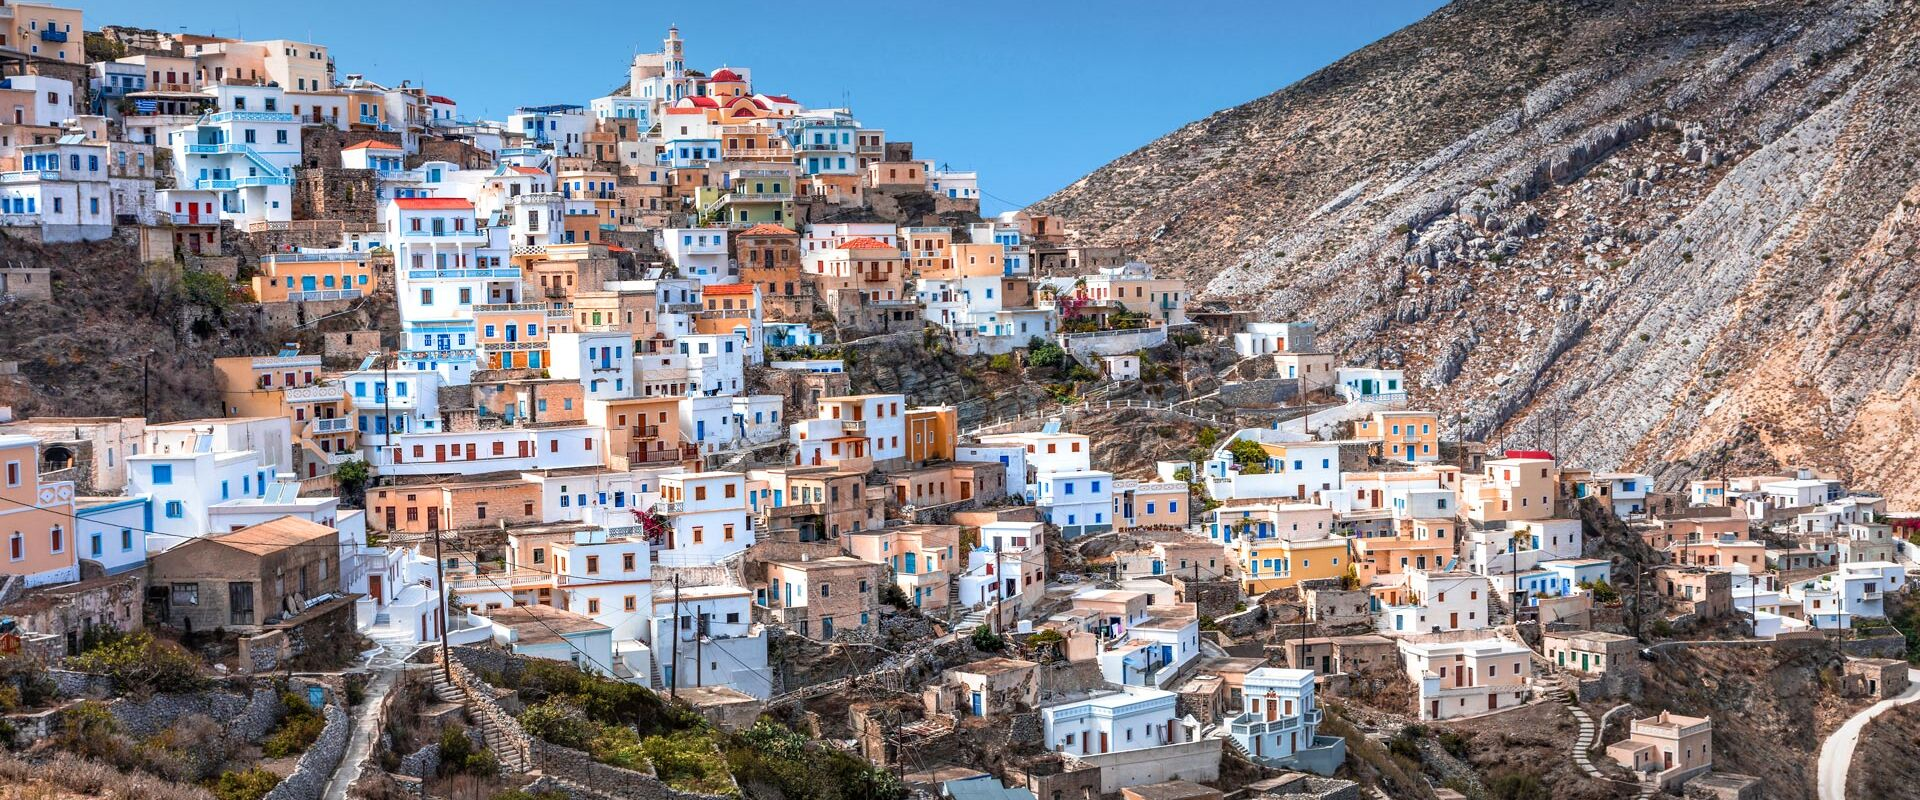 Olymbos, the most famous village in Karpathos island, with panoramic views